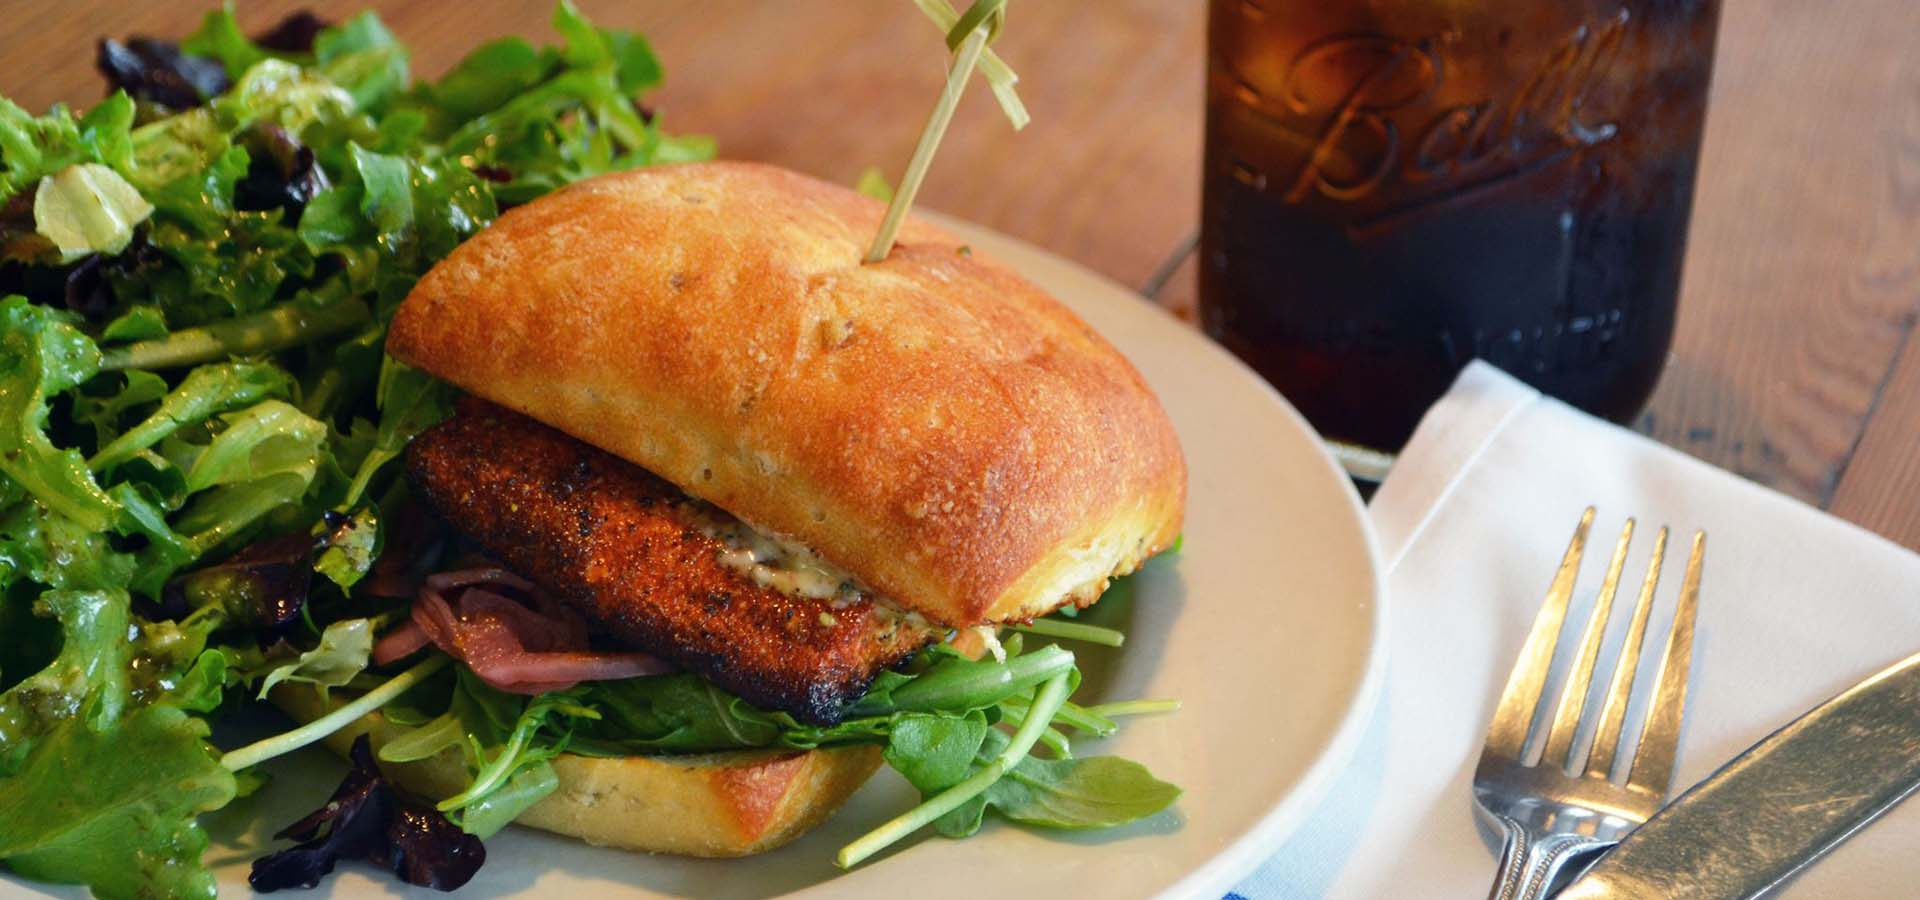 Grilled salmon sandwich with greens on a plate.